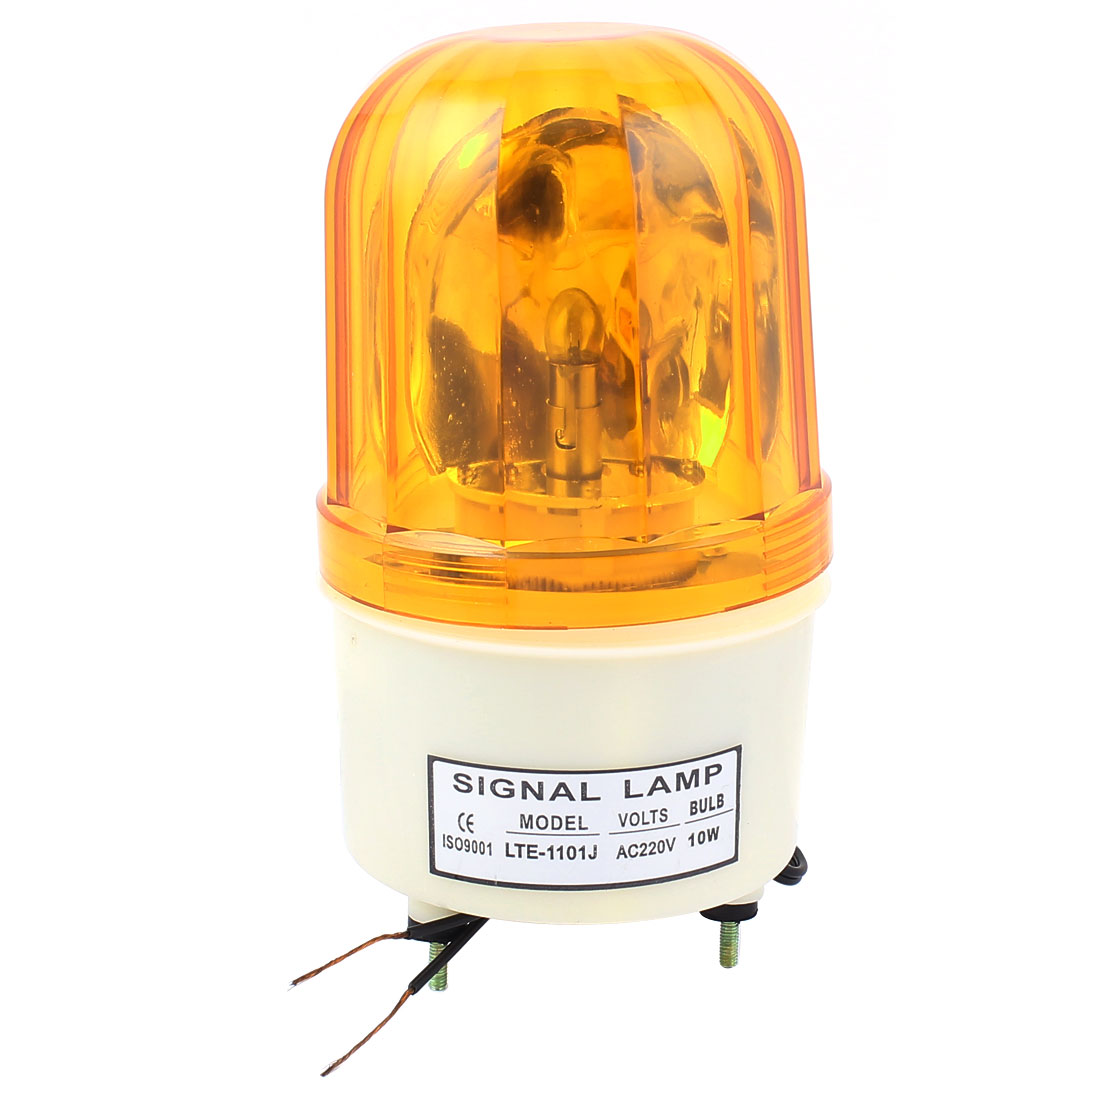 LTE-1101 DC 24V 10W Plastic Housing Yellow LED Industrial Safety Rotary Lamp Strobe Signal Warning Light